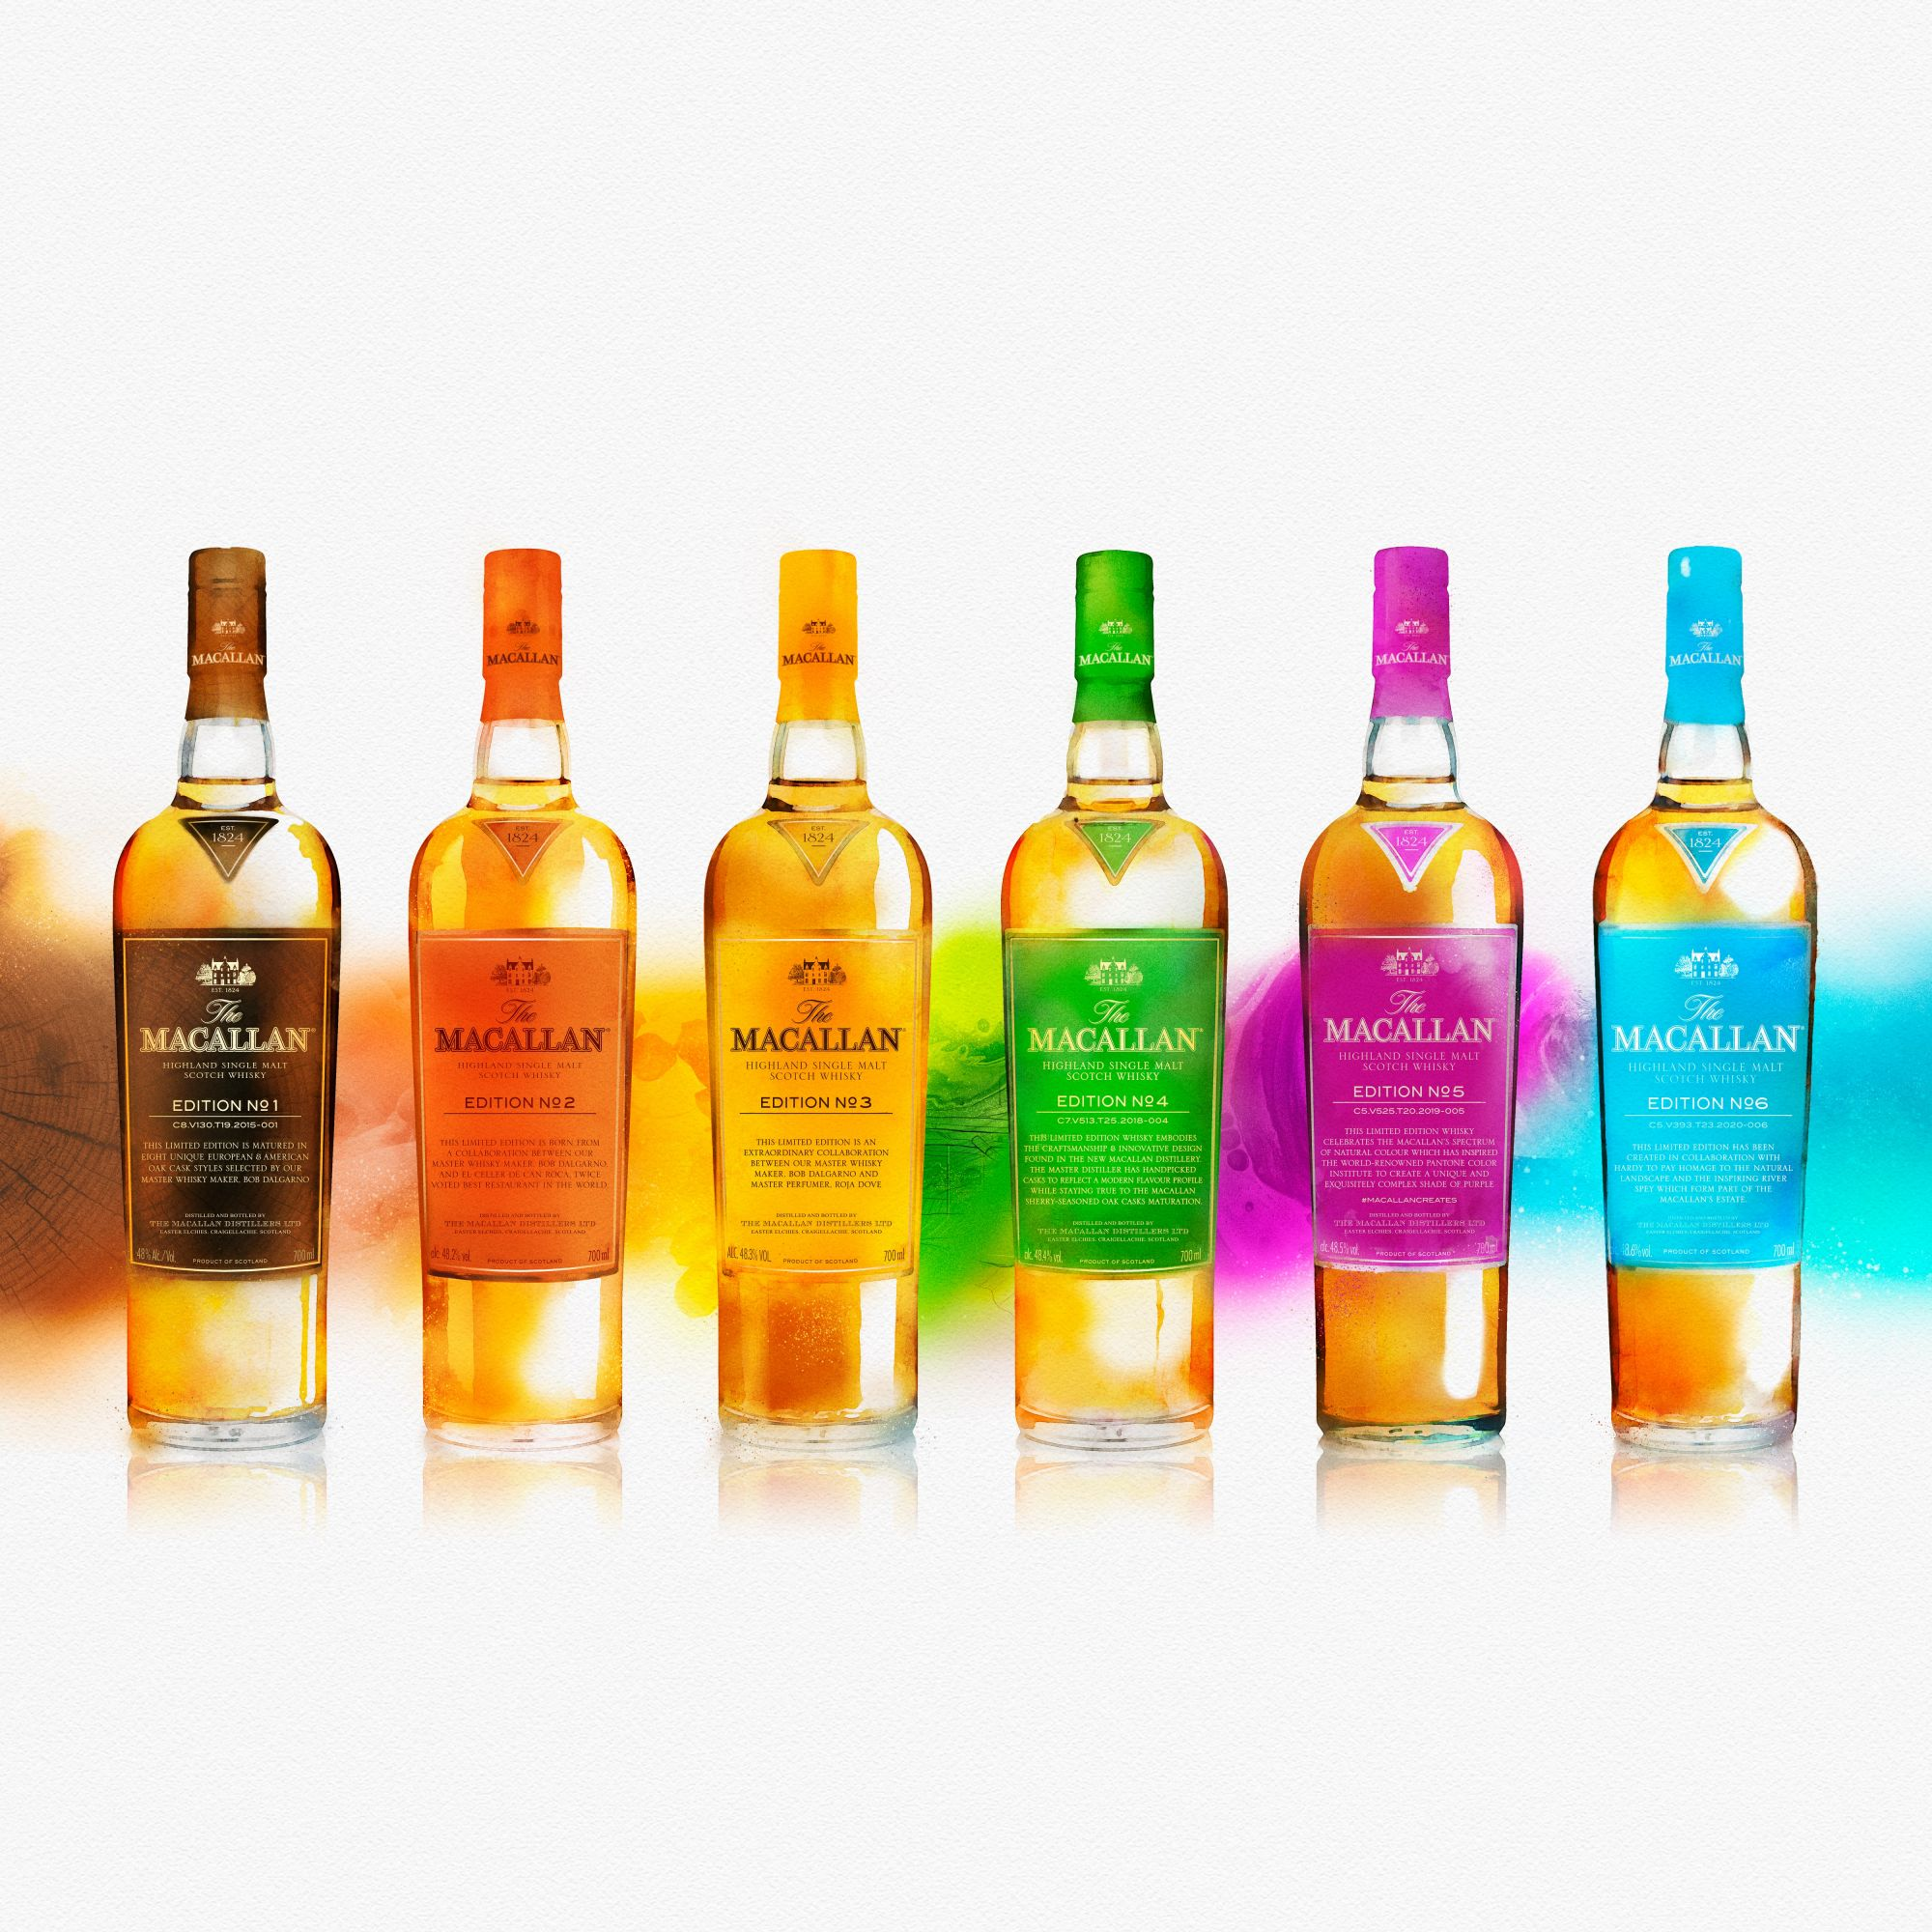 The Macallan Edition Series' 6th And Final Instalment Finally Arrives In The Philippines